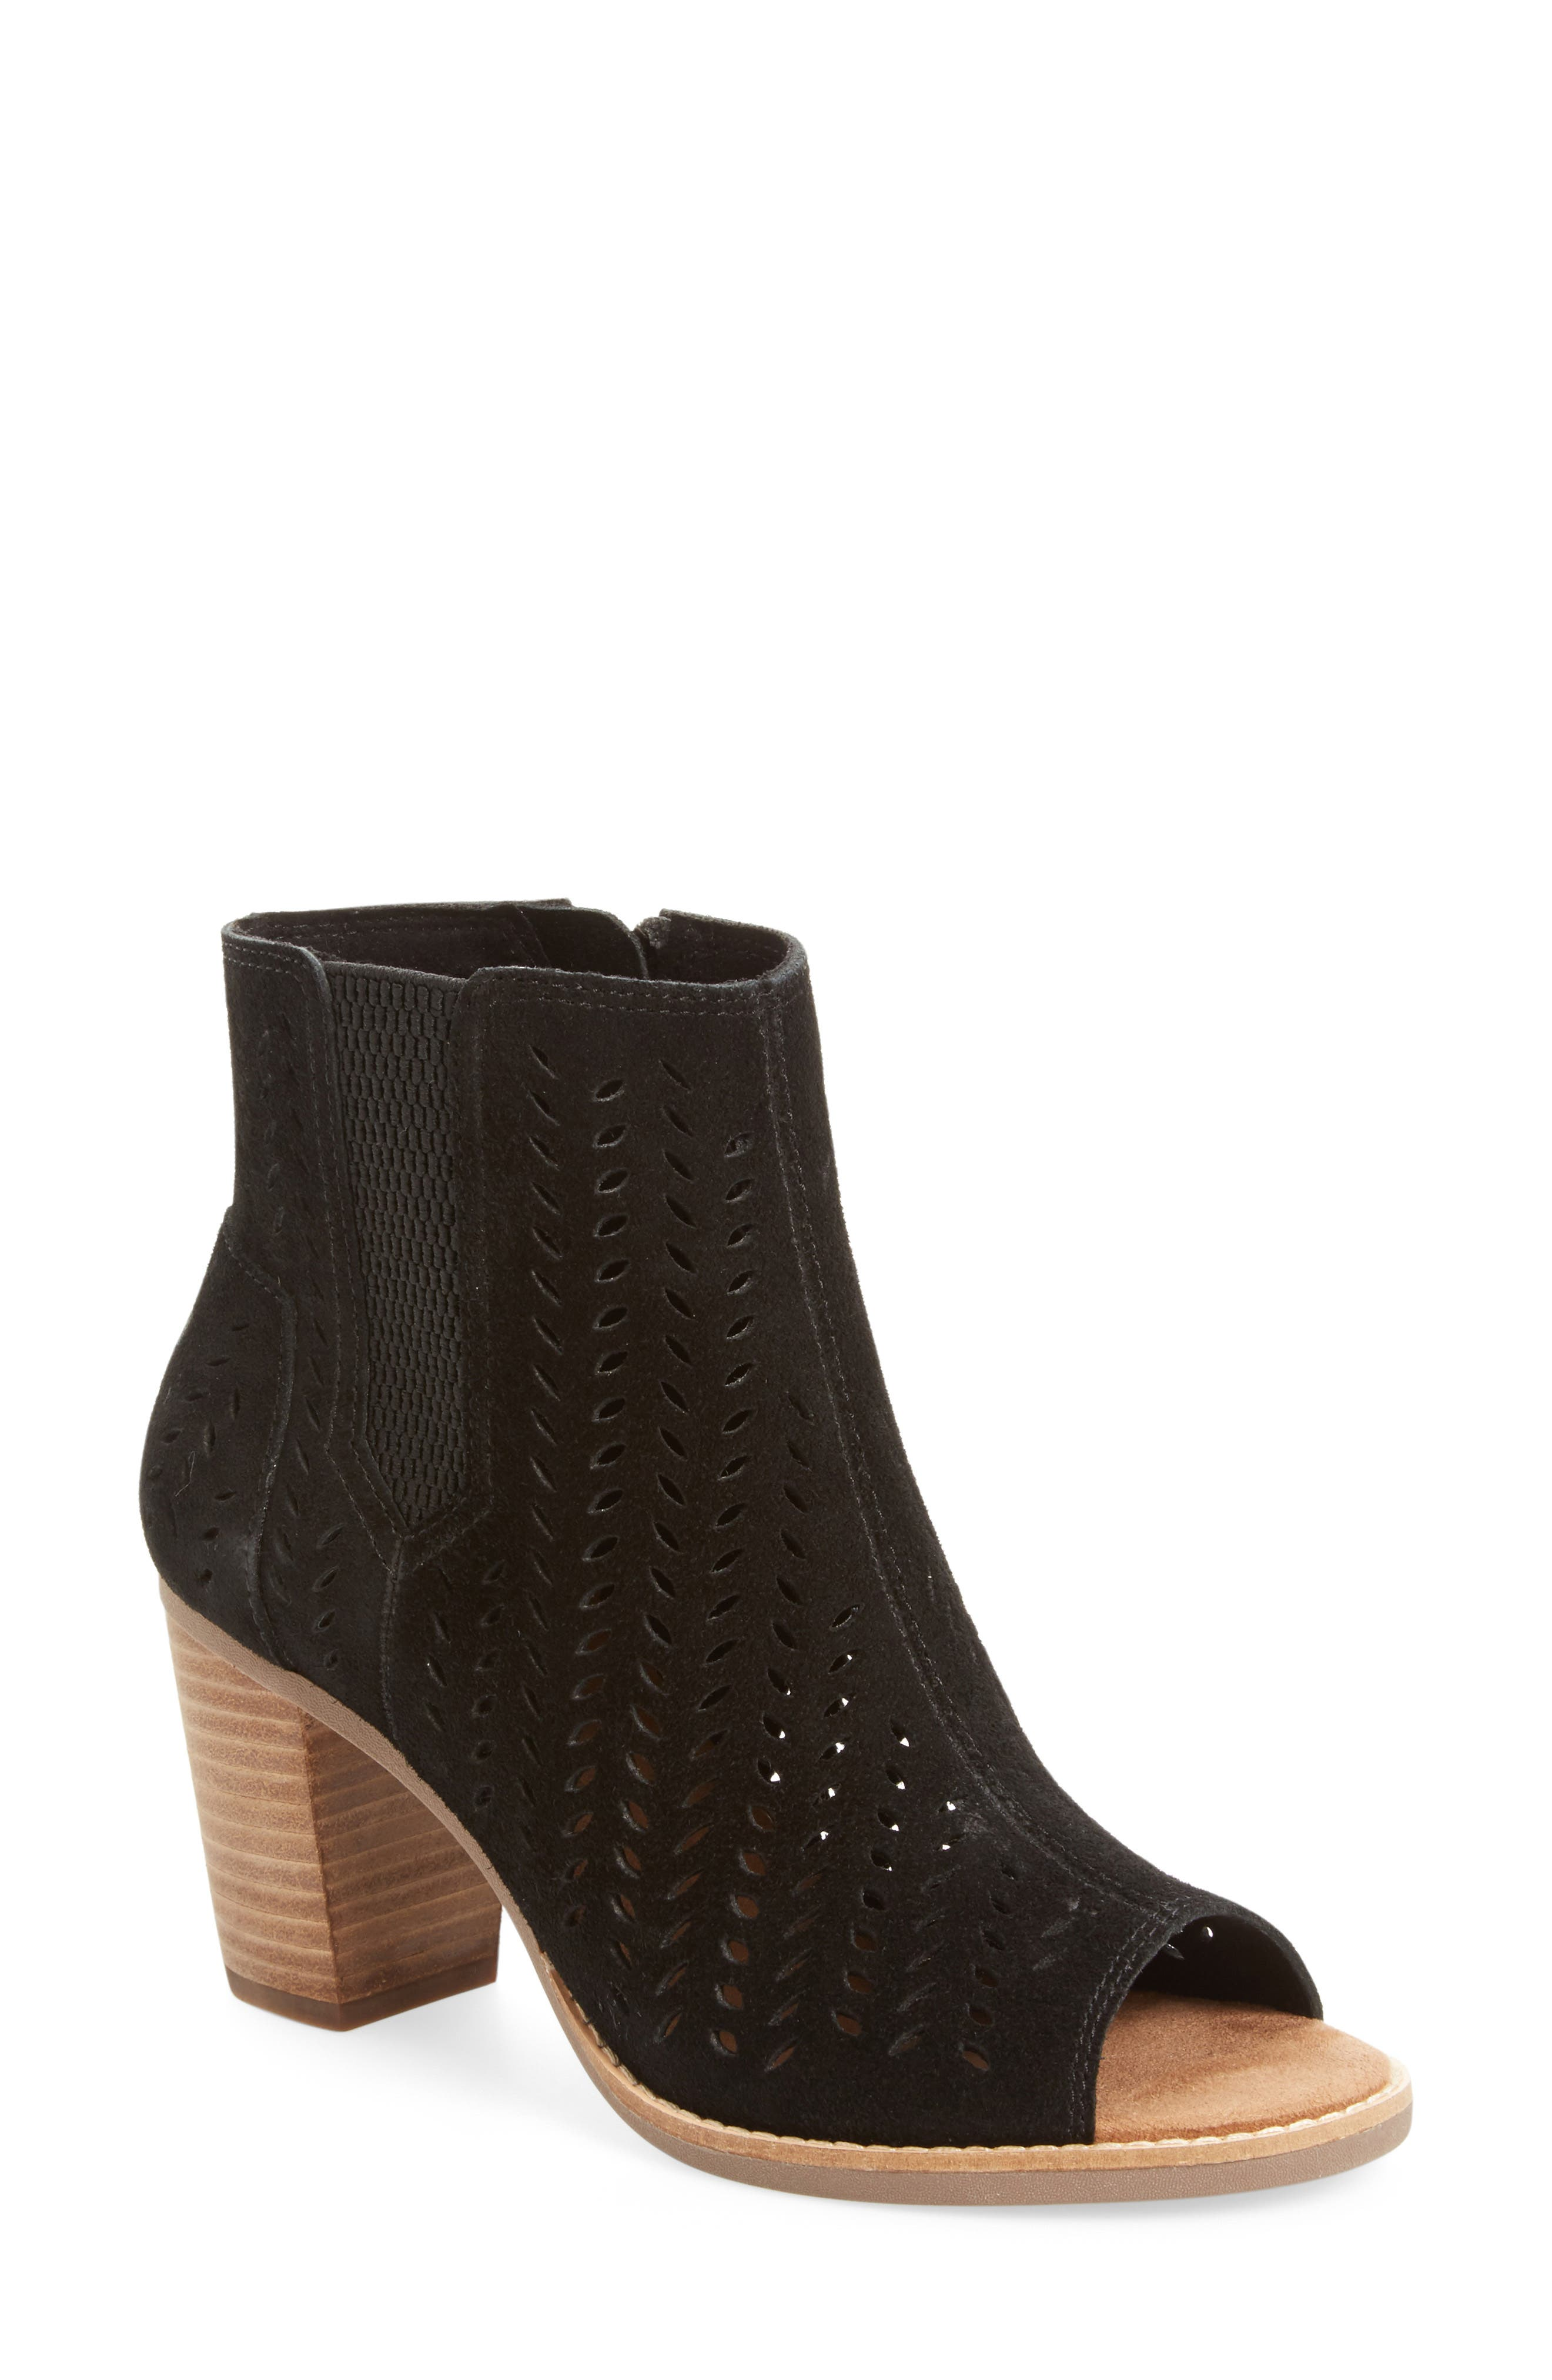 Majorca Perforated Suede Bootie, Main, color, 001